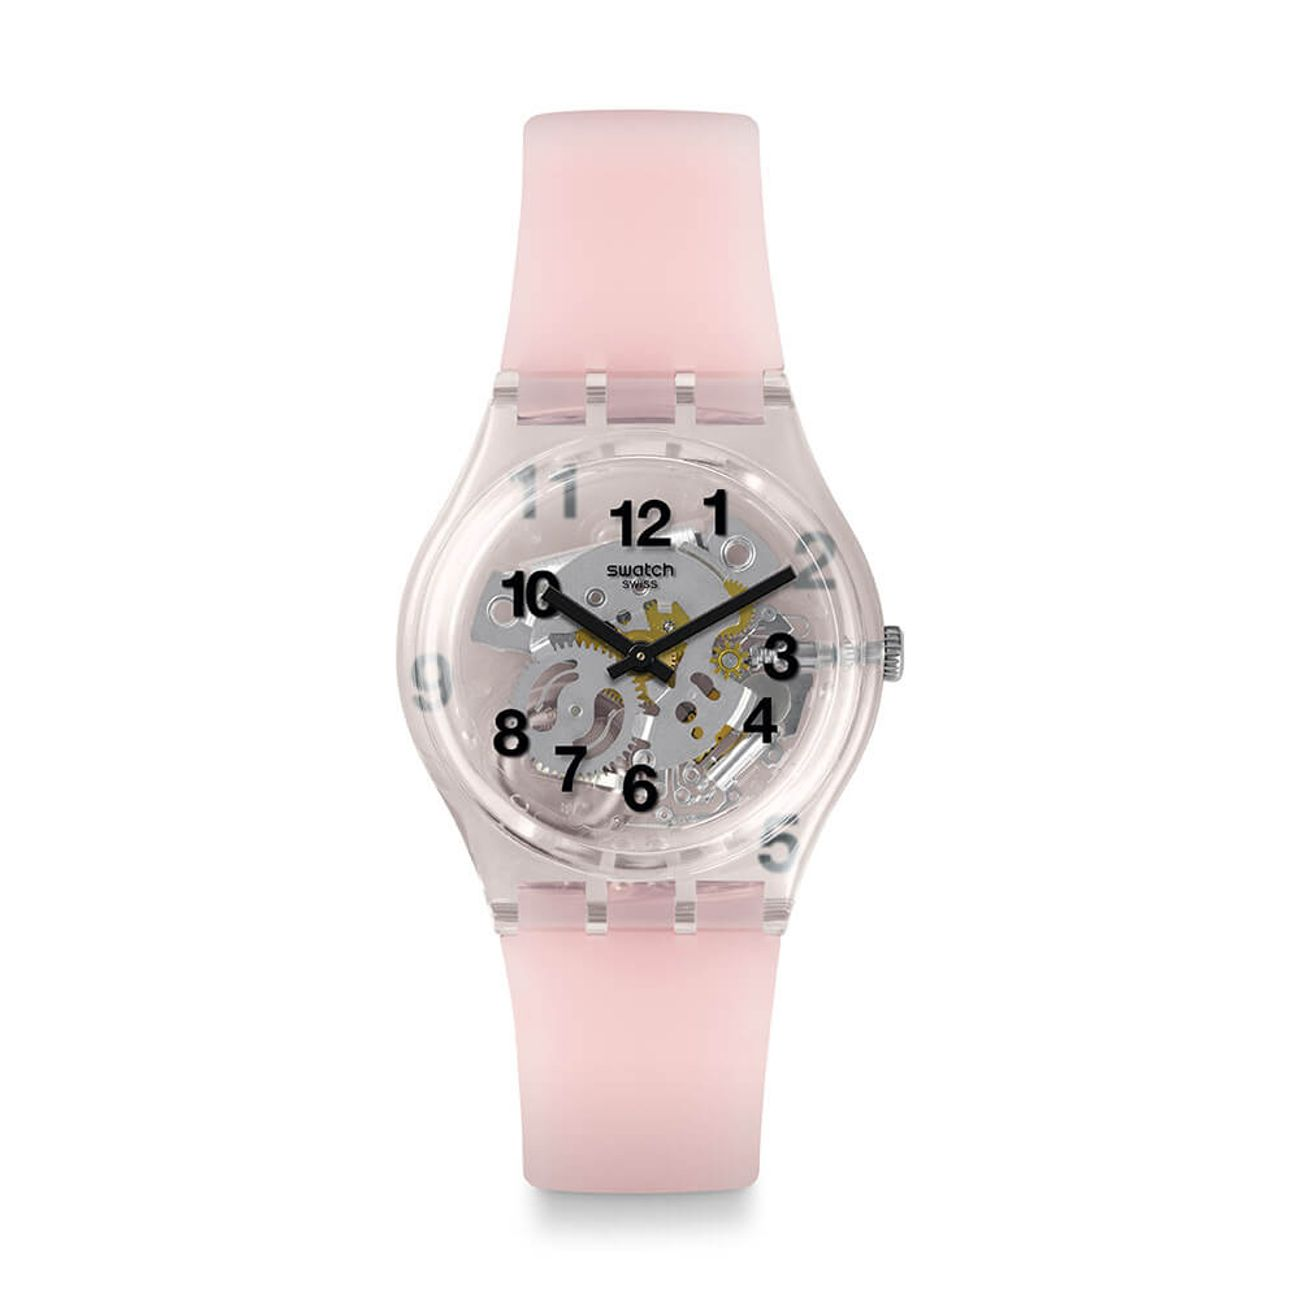 Swatch Reloj Watch Style Board Pink qGUpLSVMz